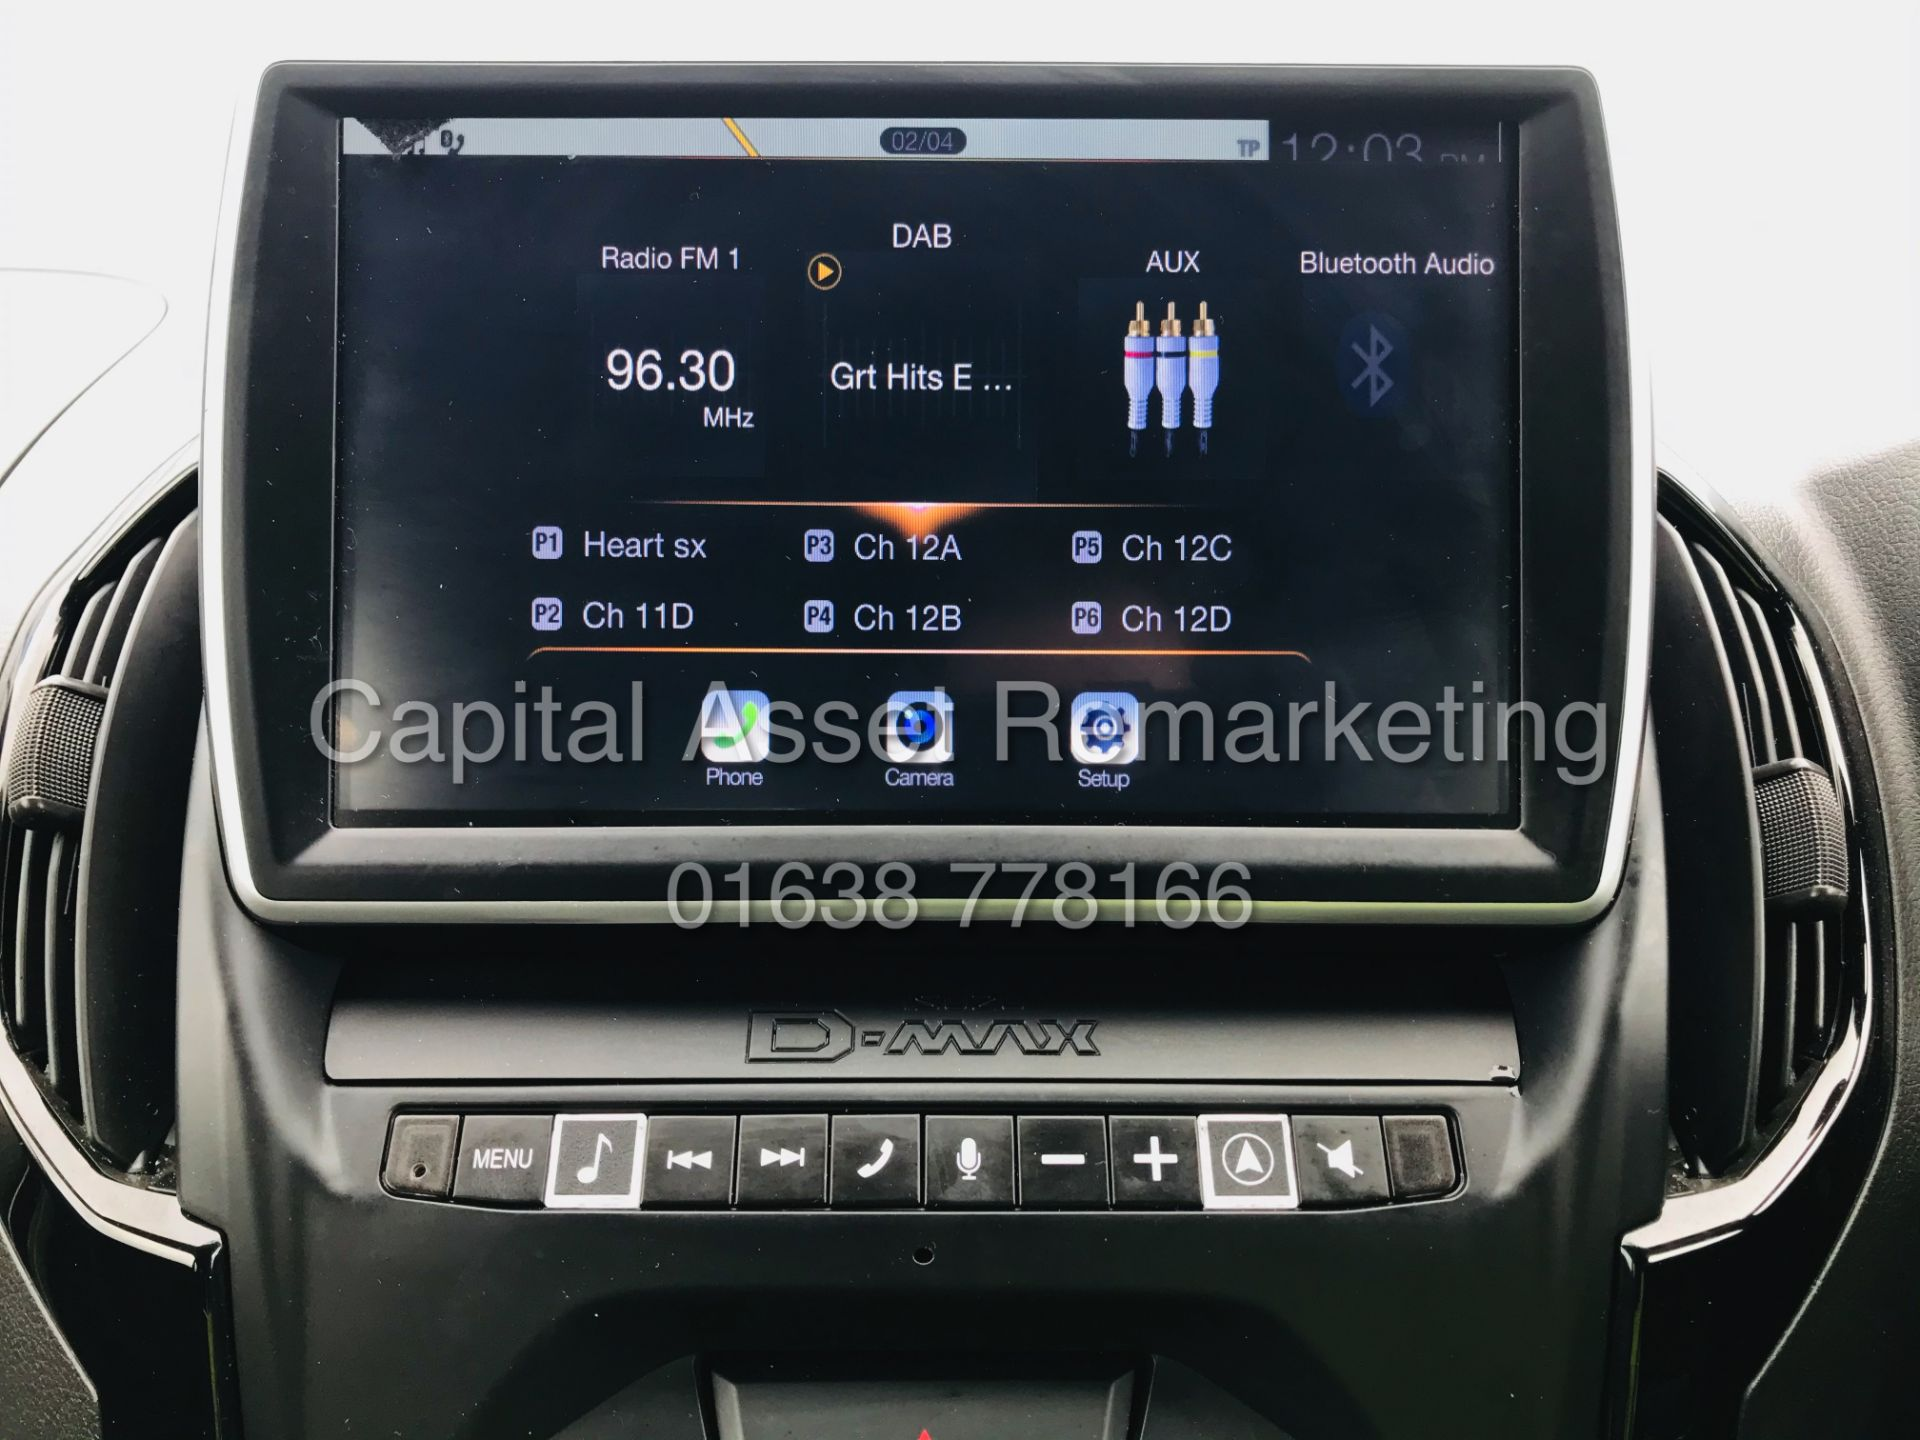 "(On Sale) ISUZU D-MAX ""BLADE"" AUTO - 1 OWNER (2019 - EURO 6) LEATHER - SAT NAV *TOP SPEC* - Image 28 of 34"